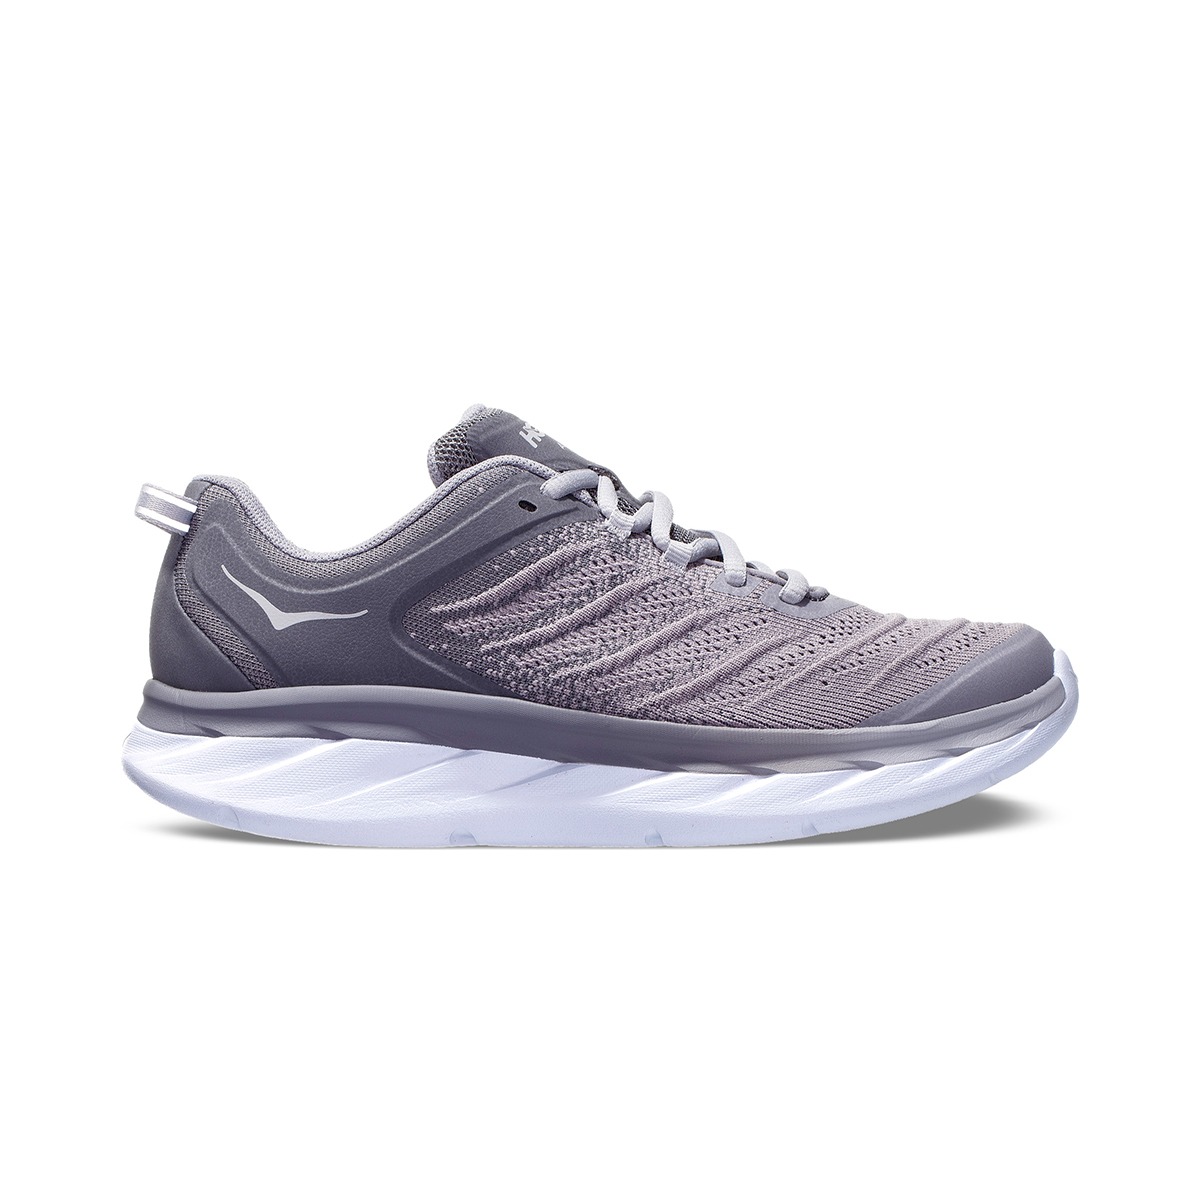 Women's Hoka One One Akasa Running Shoe - Color: Frost Gray/Sconce - Size: 5 - Width: Regular, Frost Gray/Sconce, large, image 1